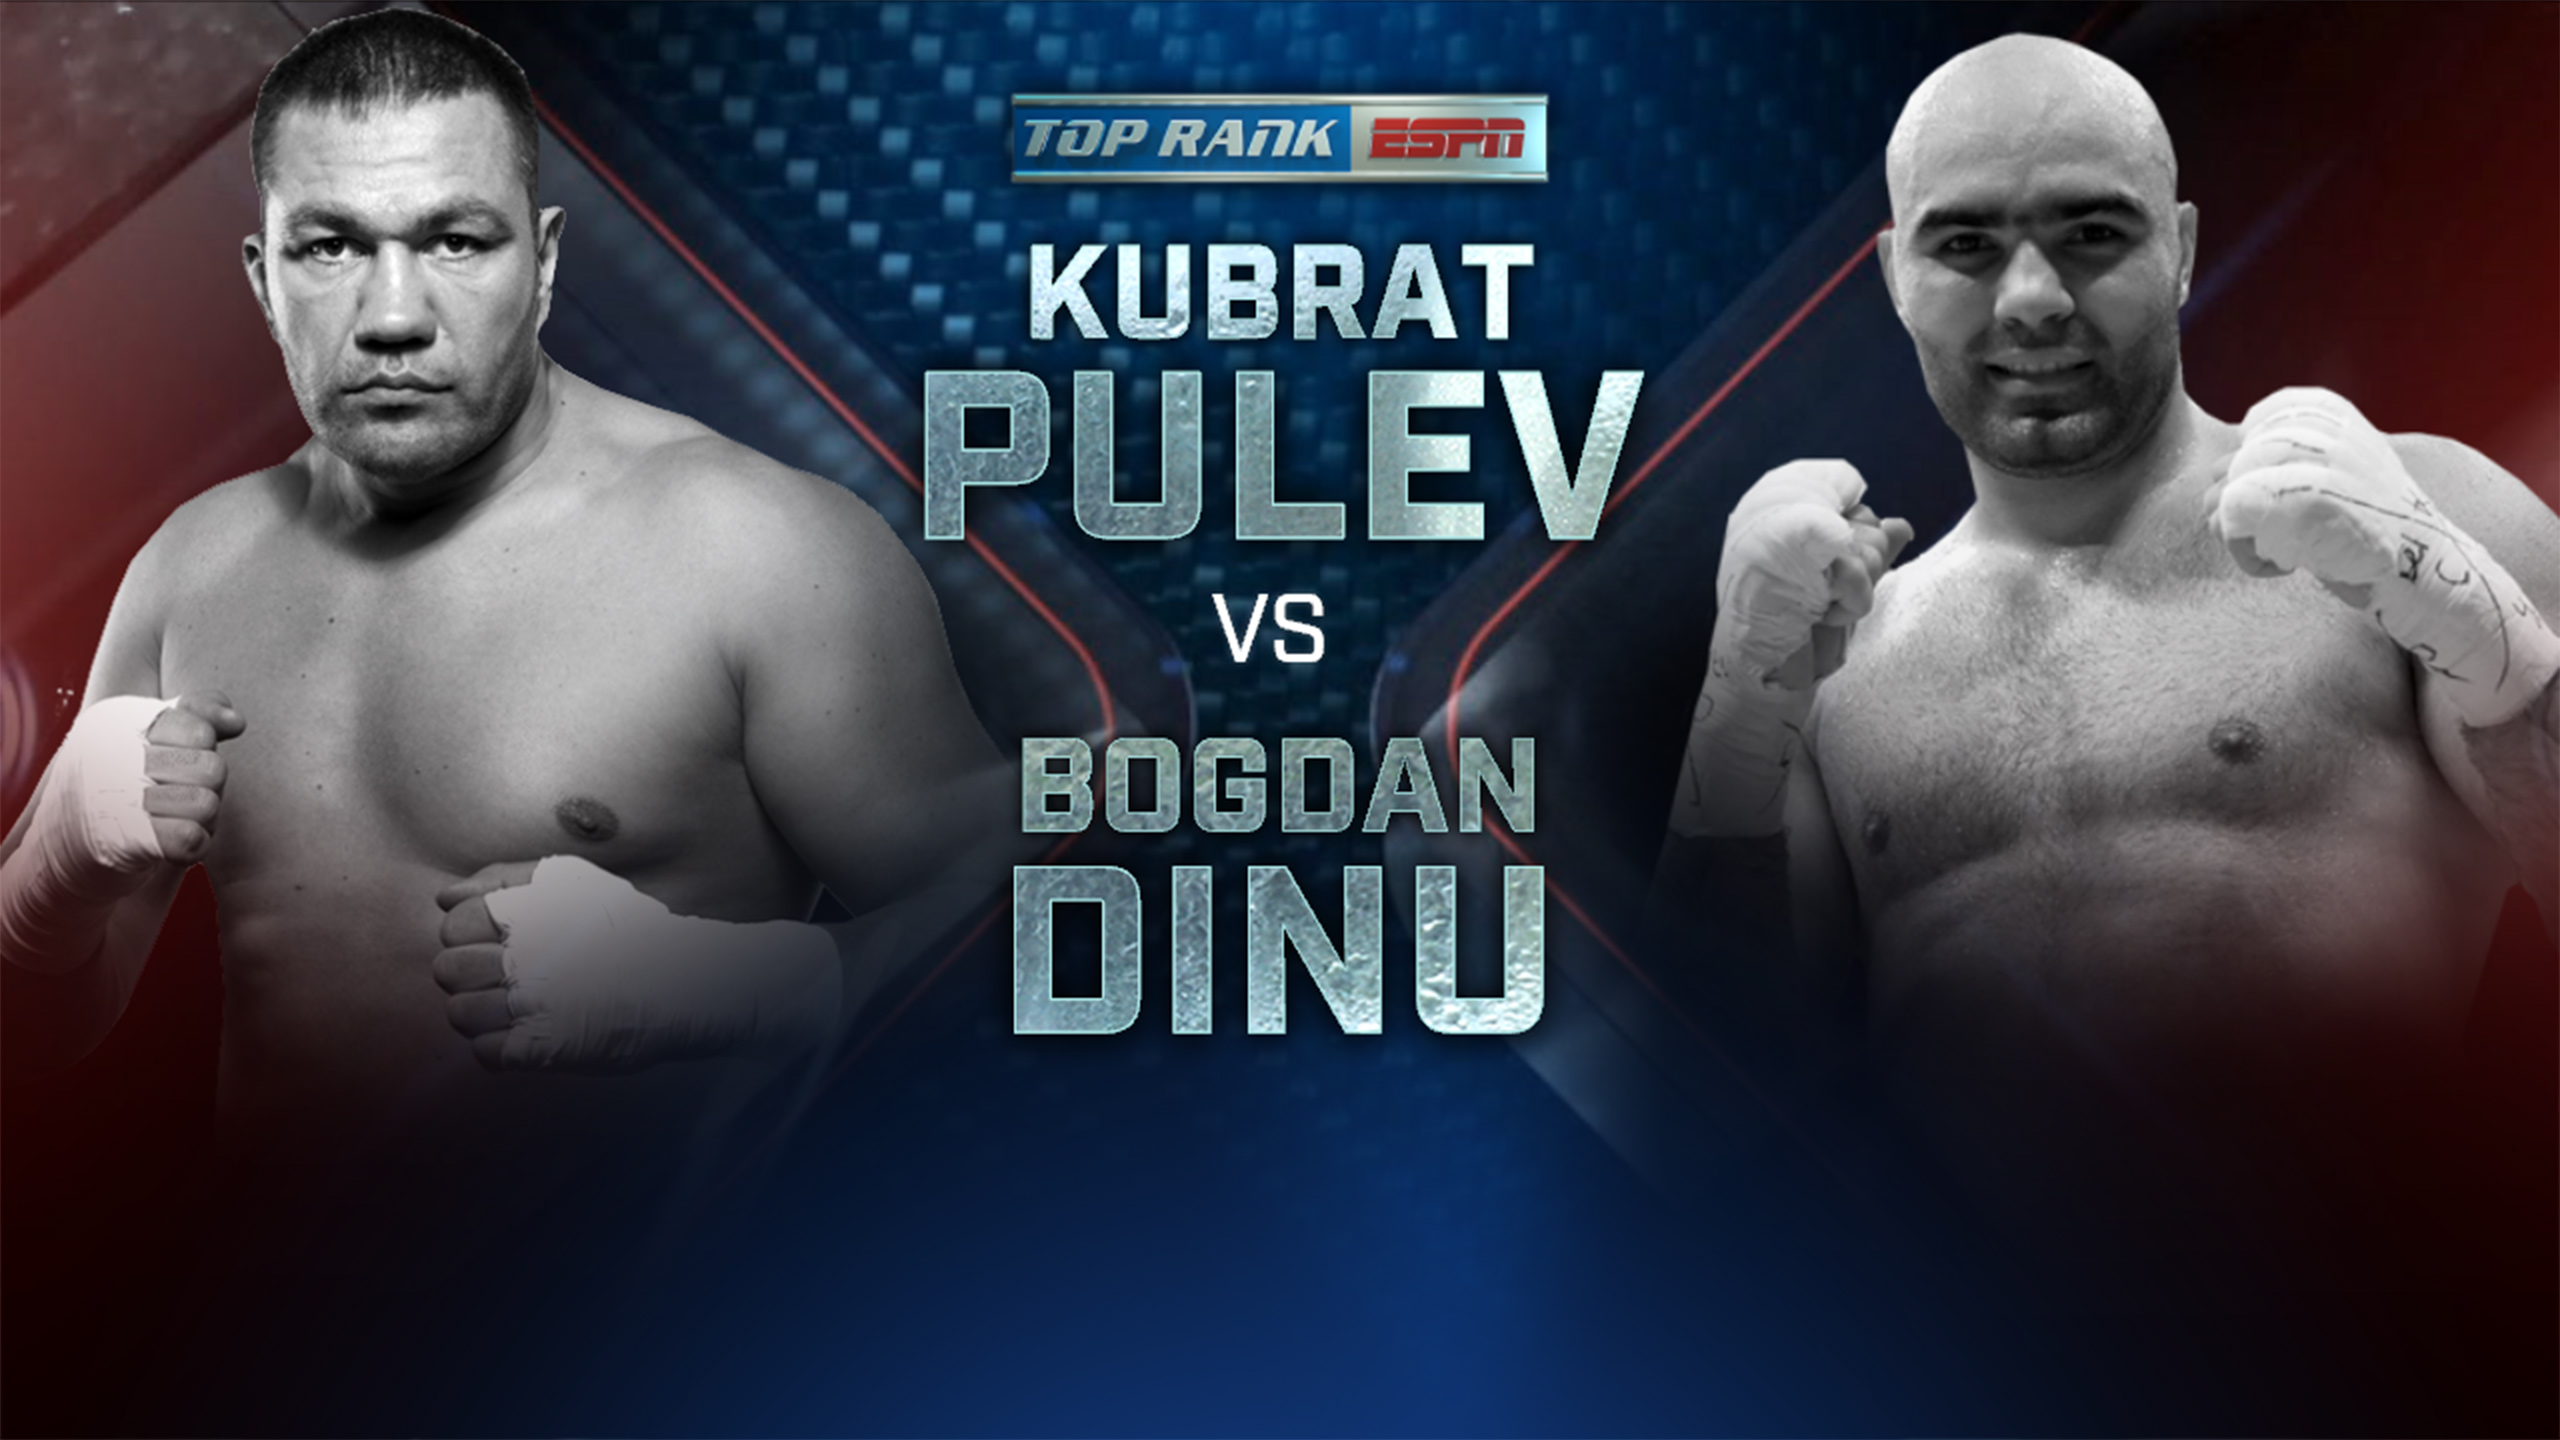 In Spanish - Kubrat Pulev vs. Bogdan Dinu